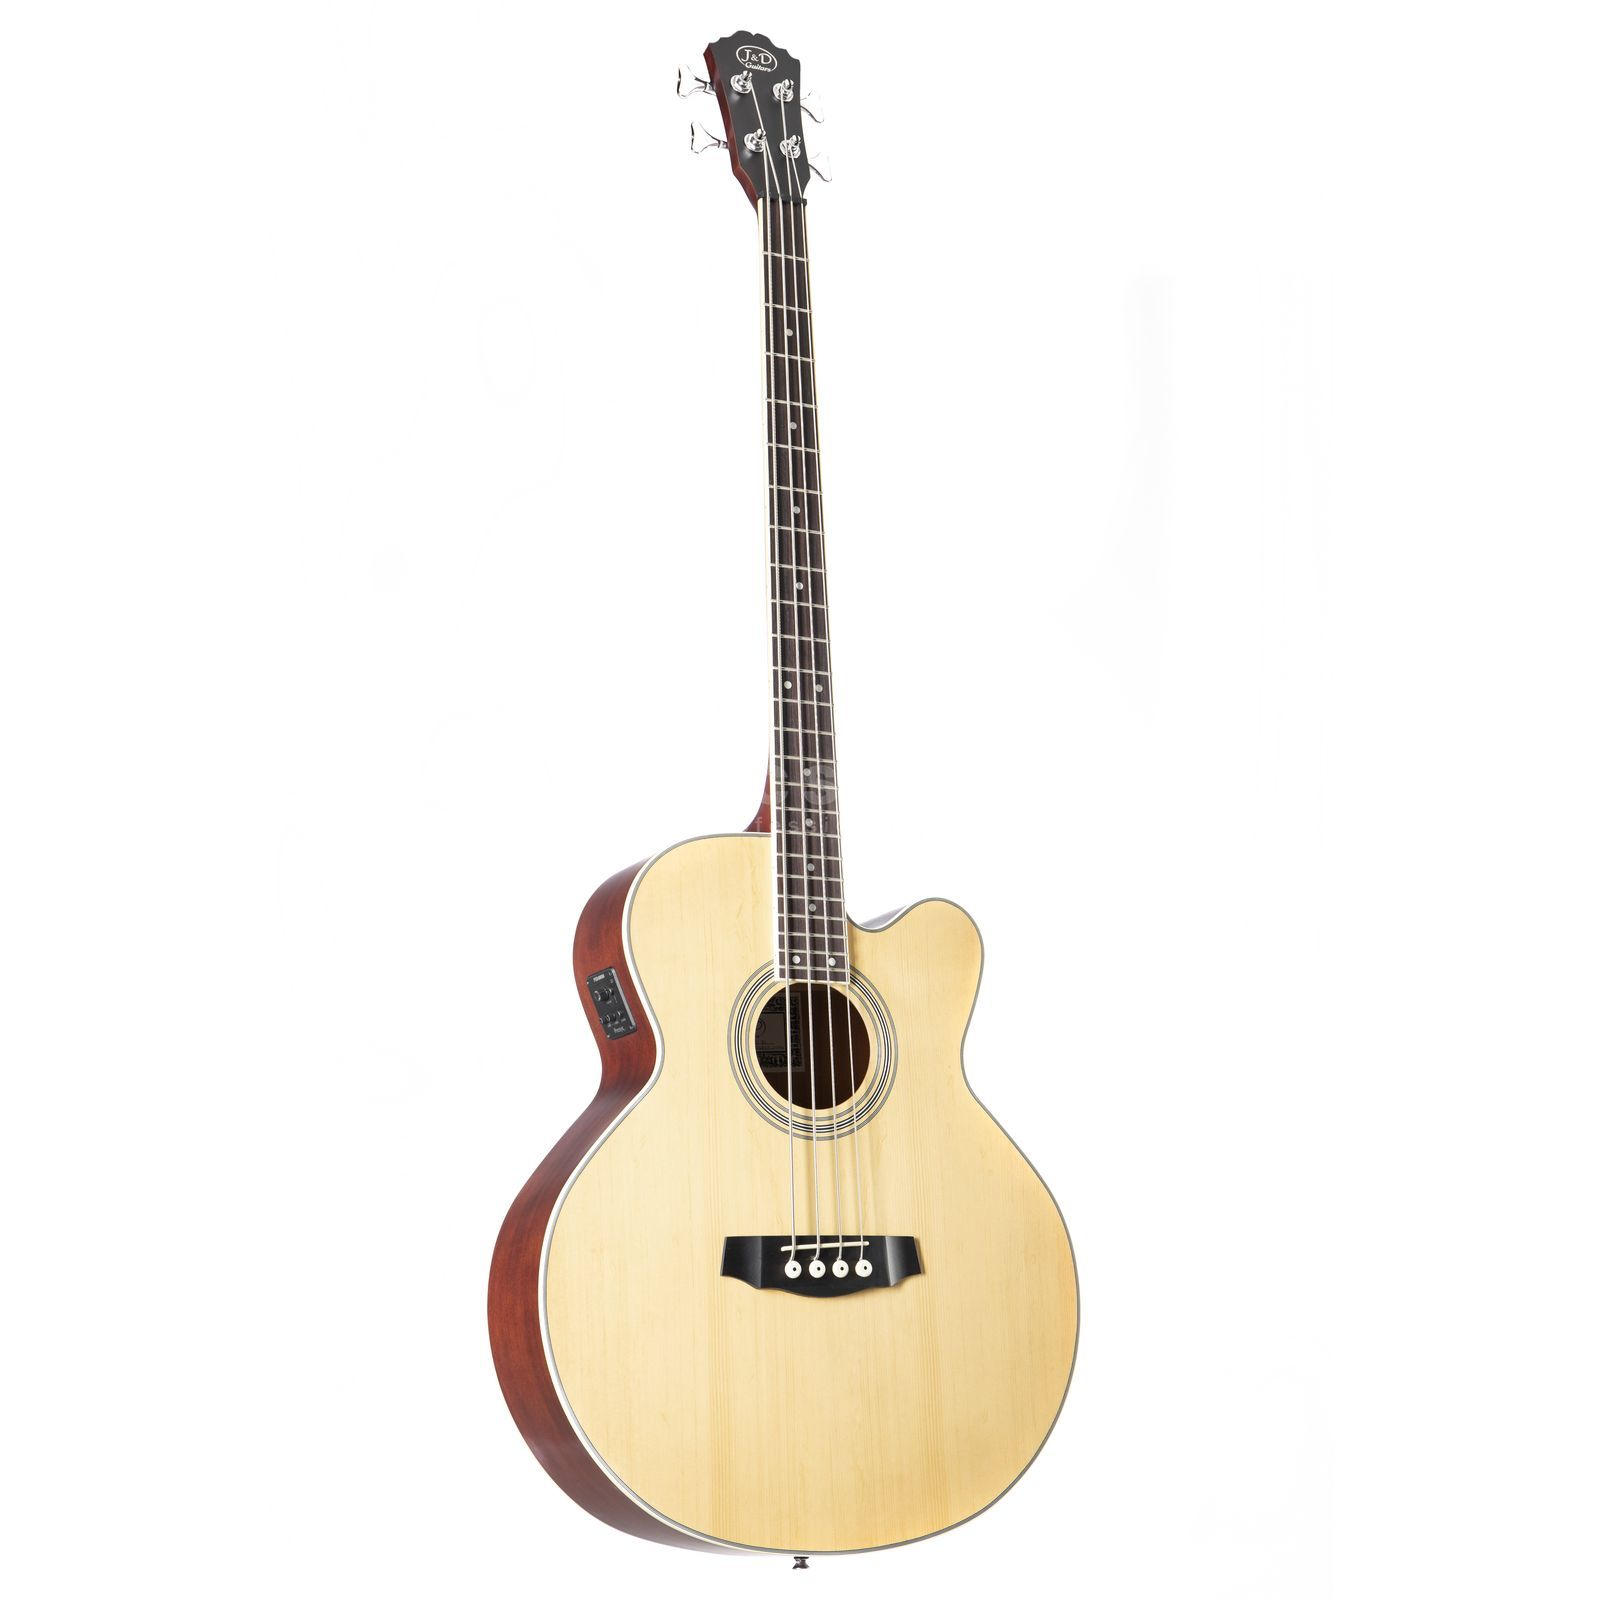 Jack & Danny ABG-1C 4-String Acoustic Bass Guitar, Cutaway, Natural Immagine prodotto